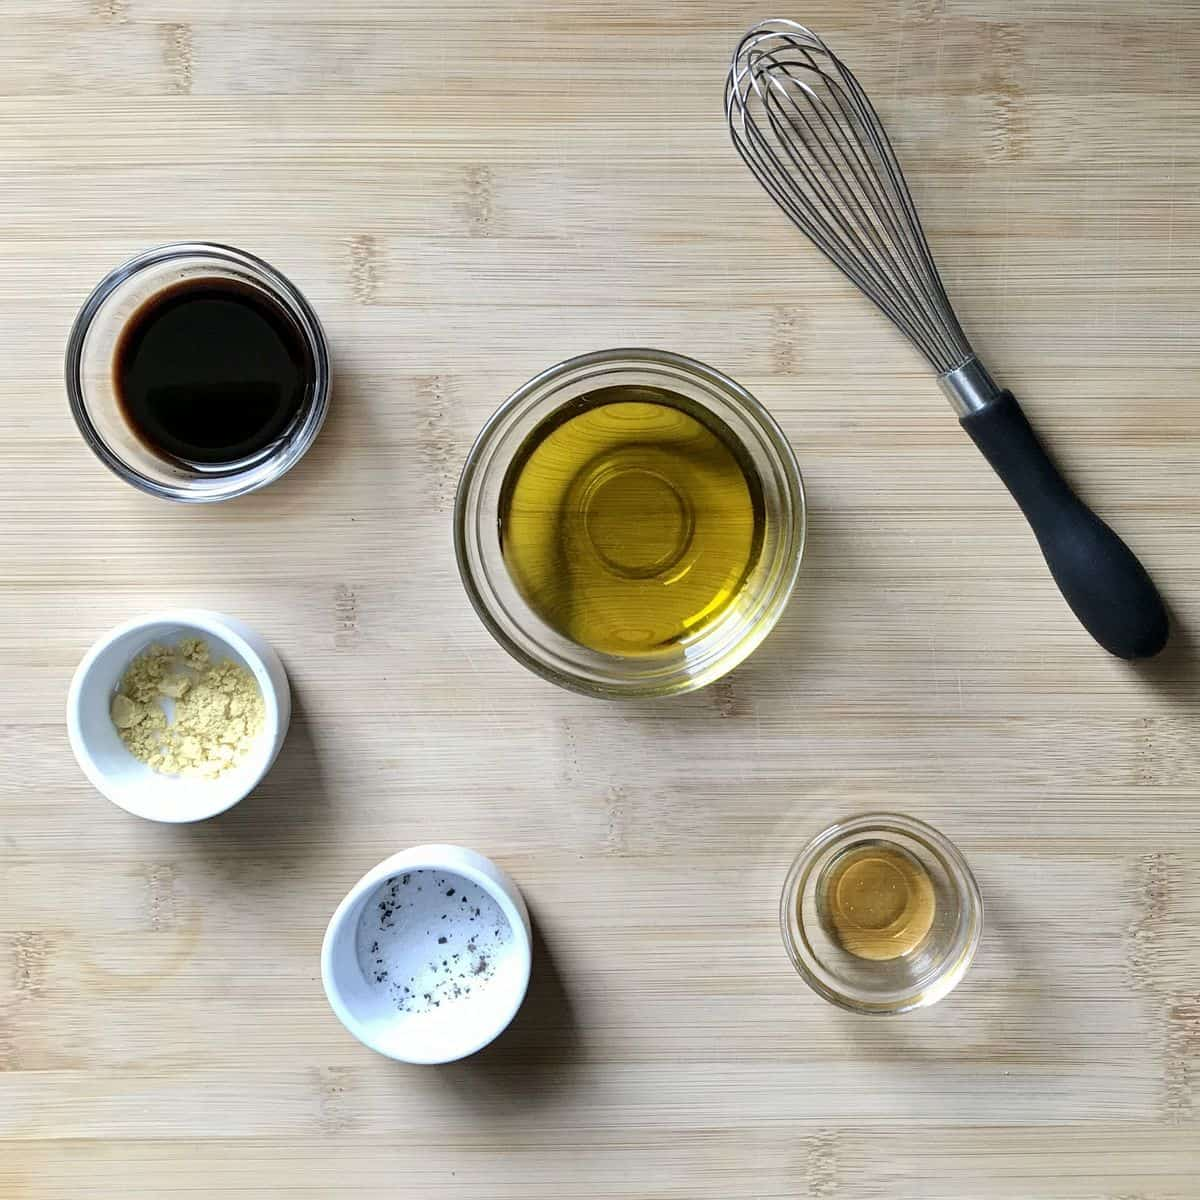 The ingredients to make the balsamic vinaigrette on a wooden table.